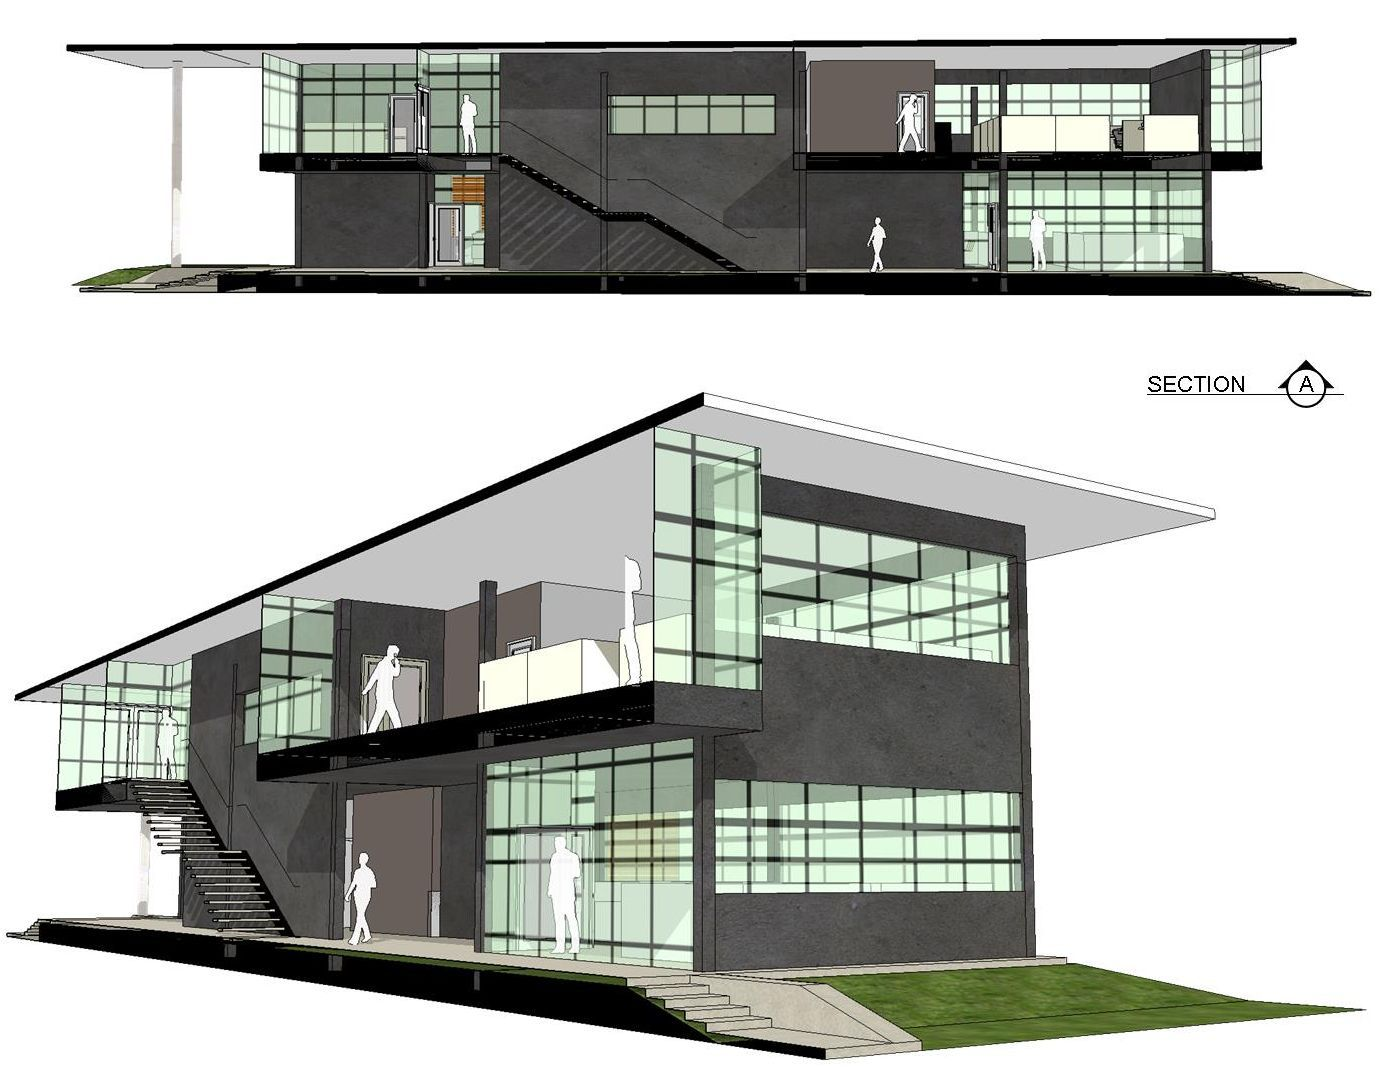 Architettura And Design 3d #preliminary #architectural for #office #building